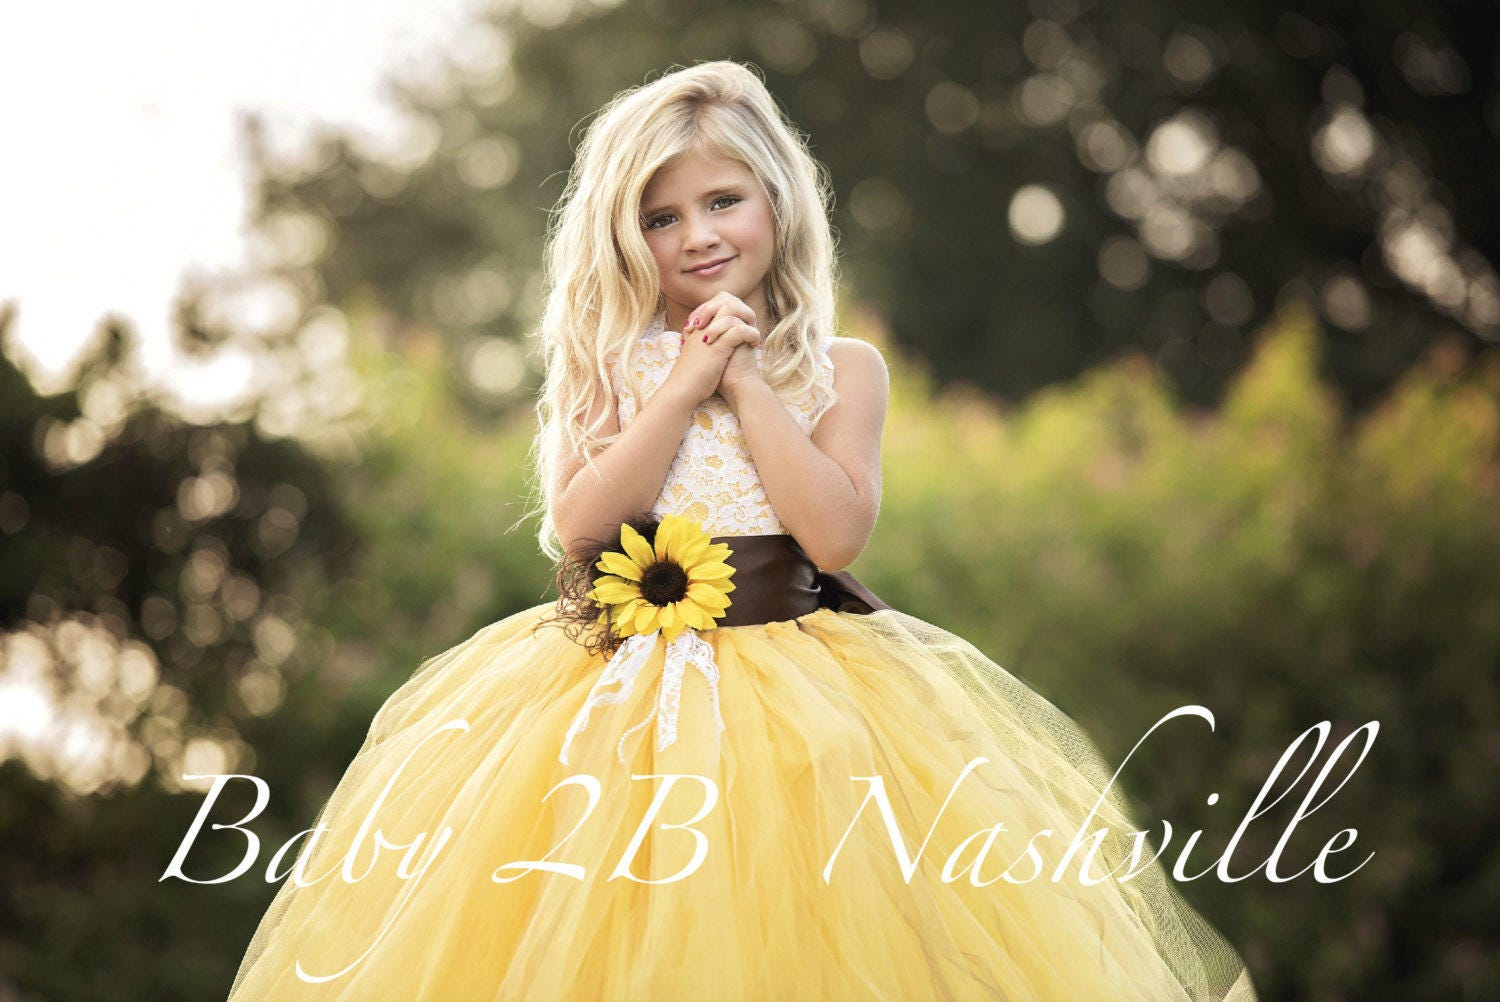 46d8343ced1d Yellow Sunflower Dress Yellow Dress Lace Dress Tulle dress ...